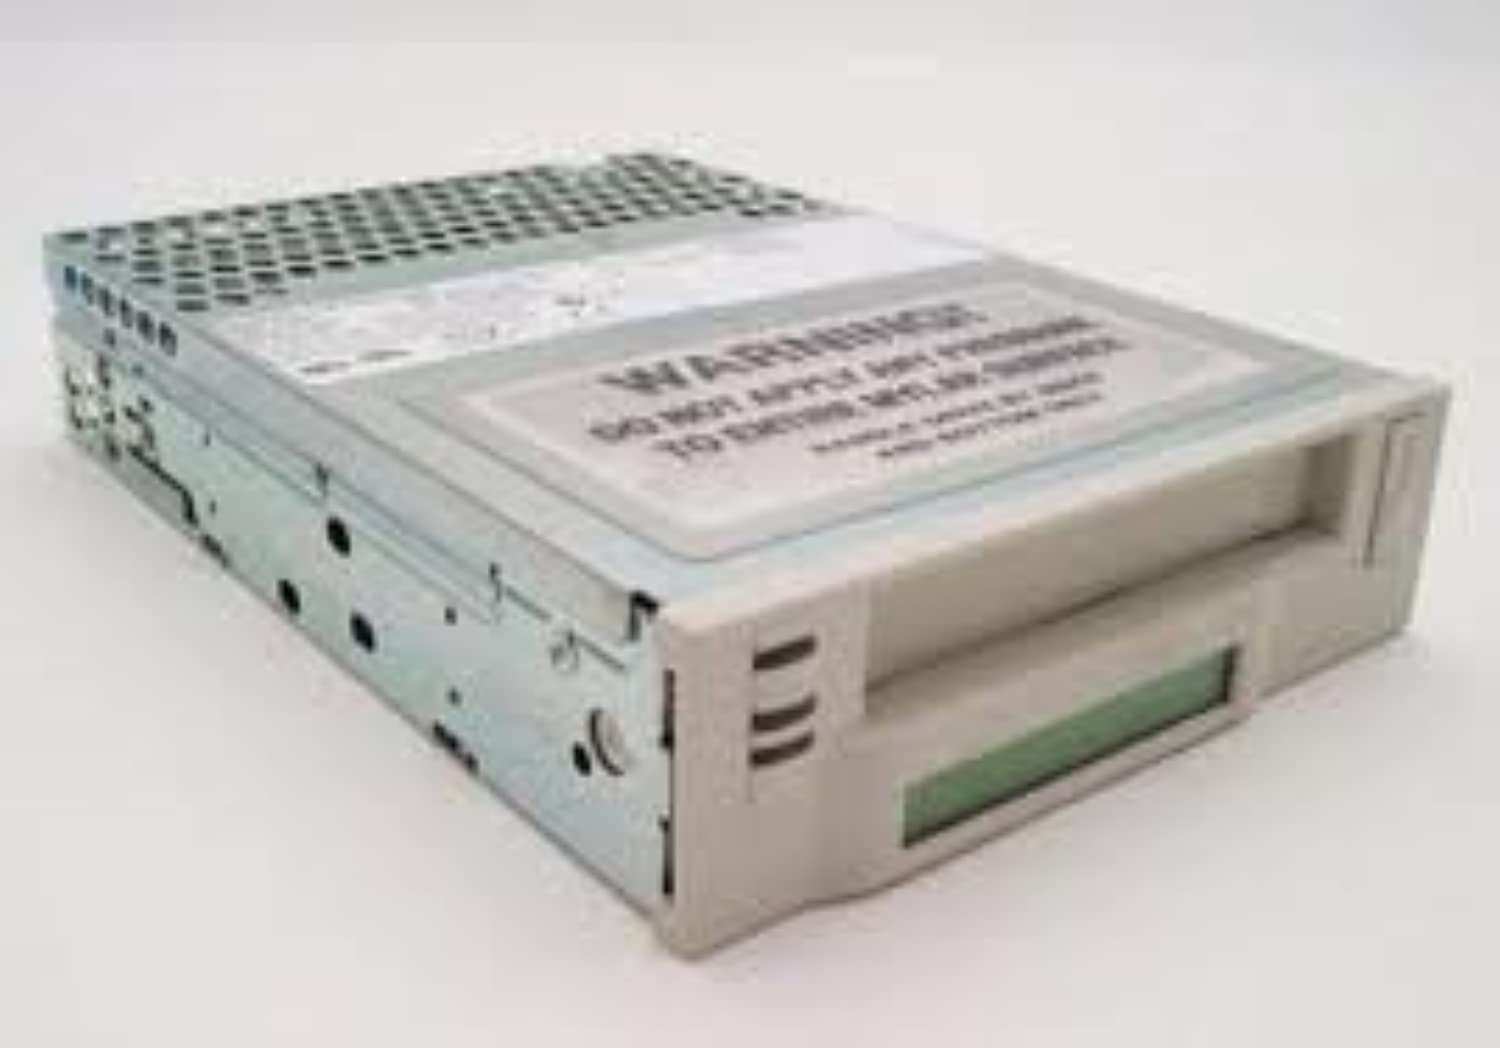 Exabyte 8900238 8900 20 40GB MAMMOTH INT. 68 PIN SCSI (8900238), Refurb